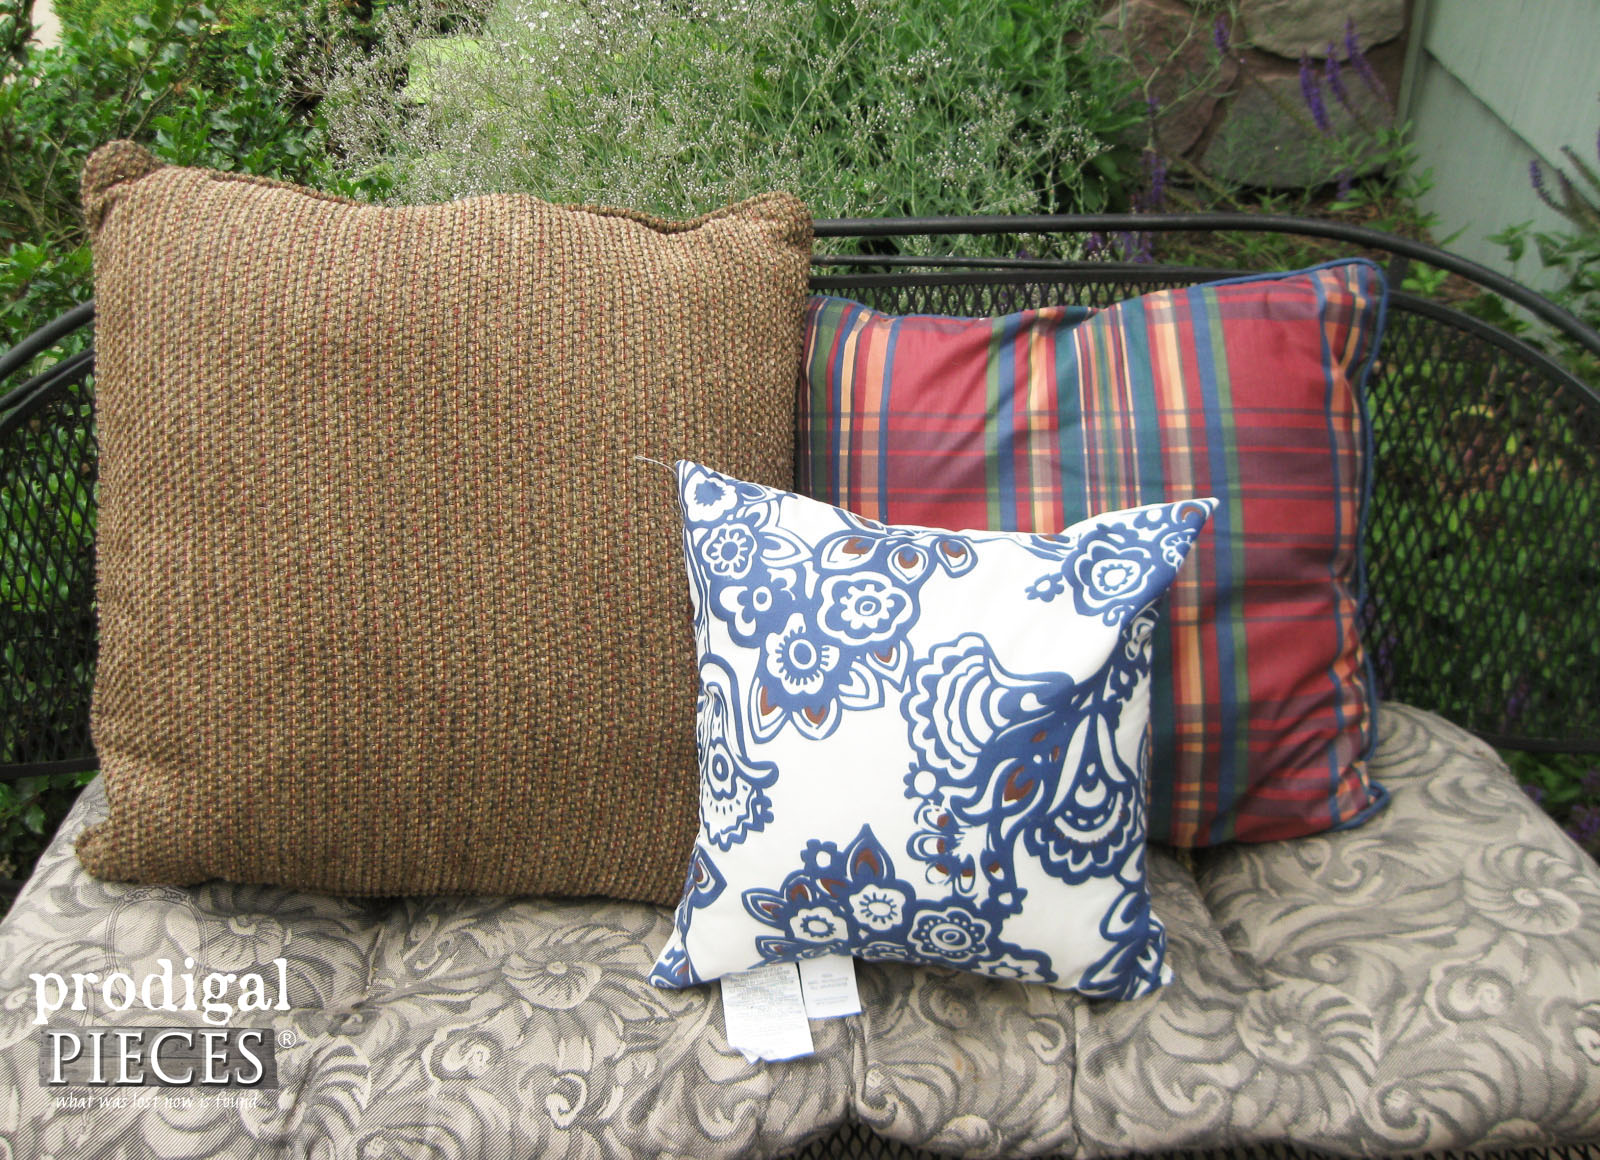 Collection of Thrifted Pillows for My DIY Outdoor Pillow Tutorial | Prodigal Pieces | www.prodigalpieces.com